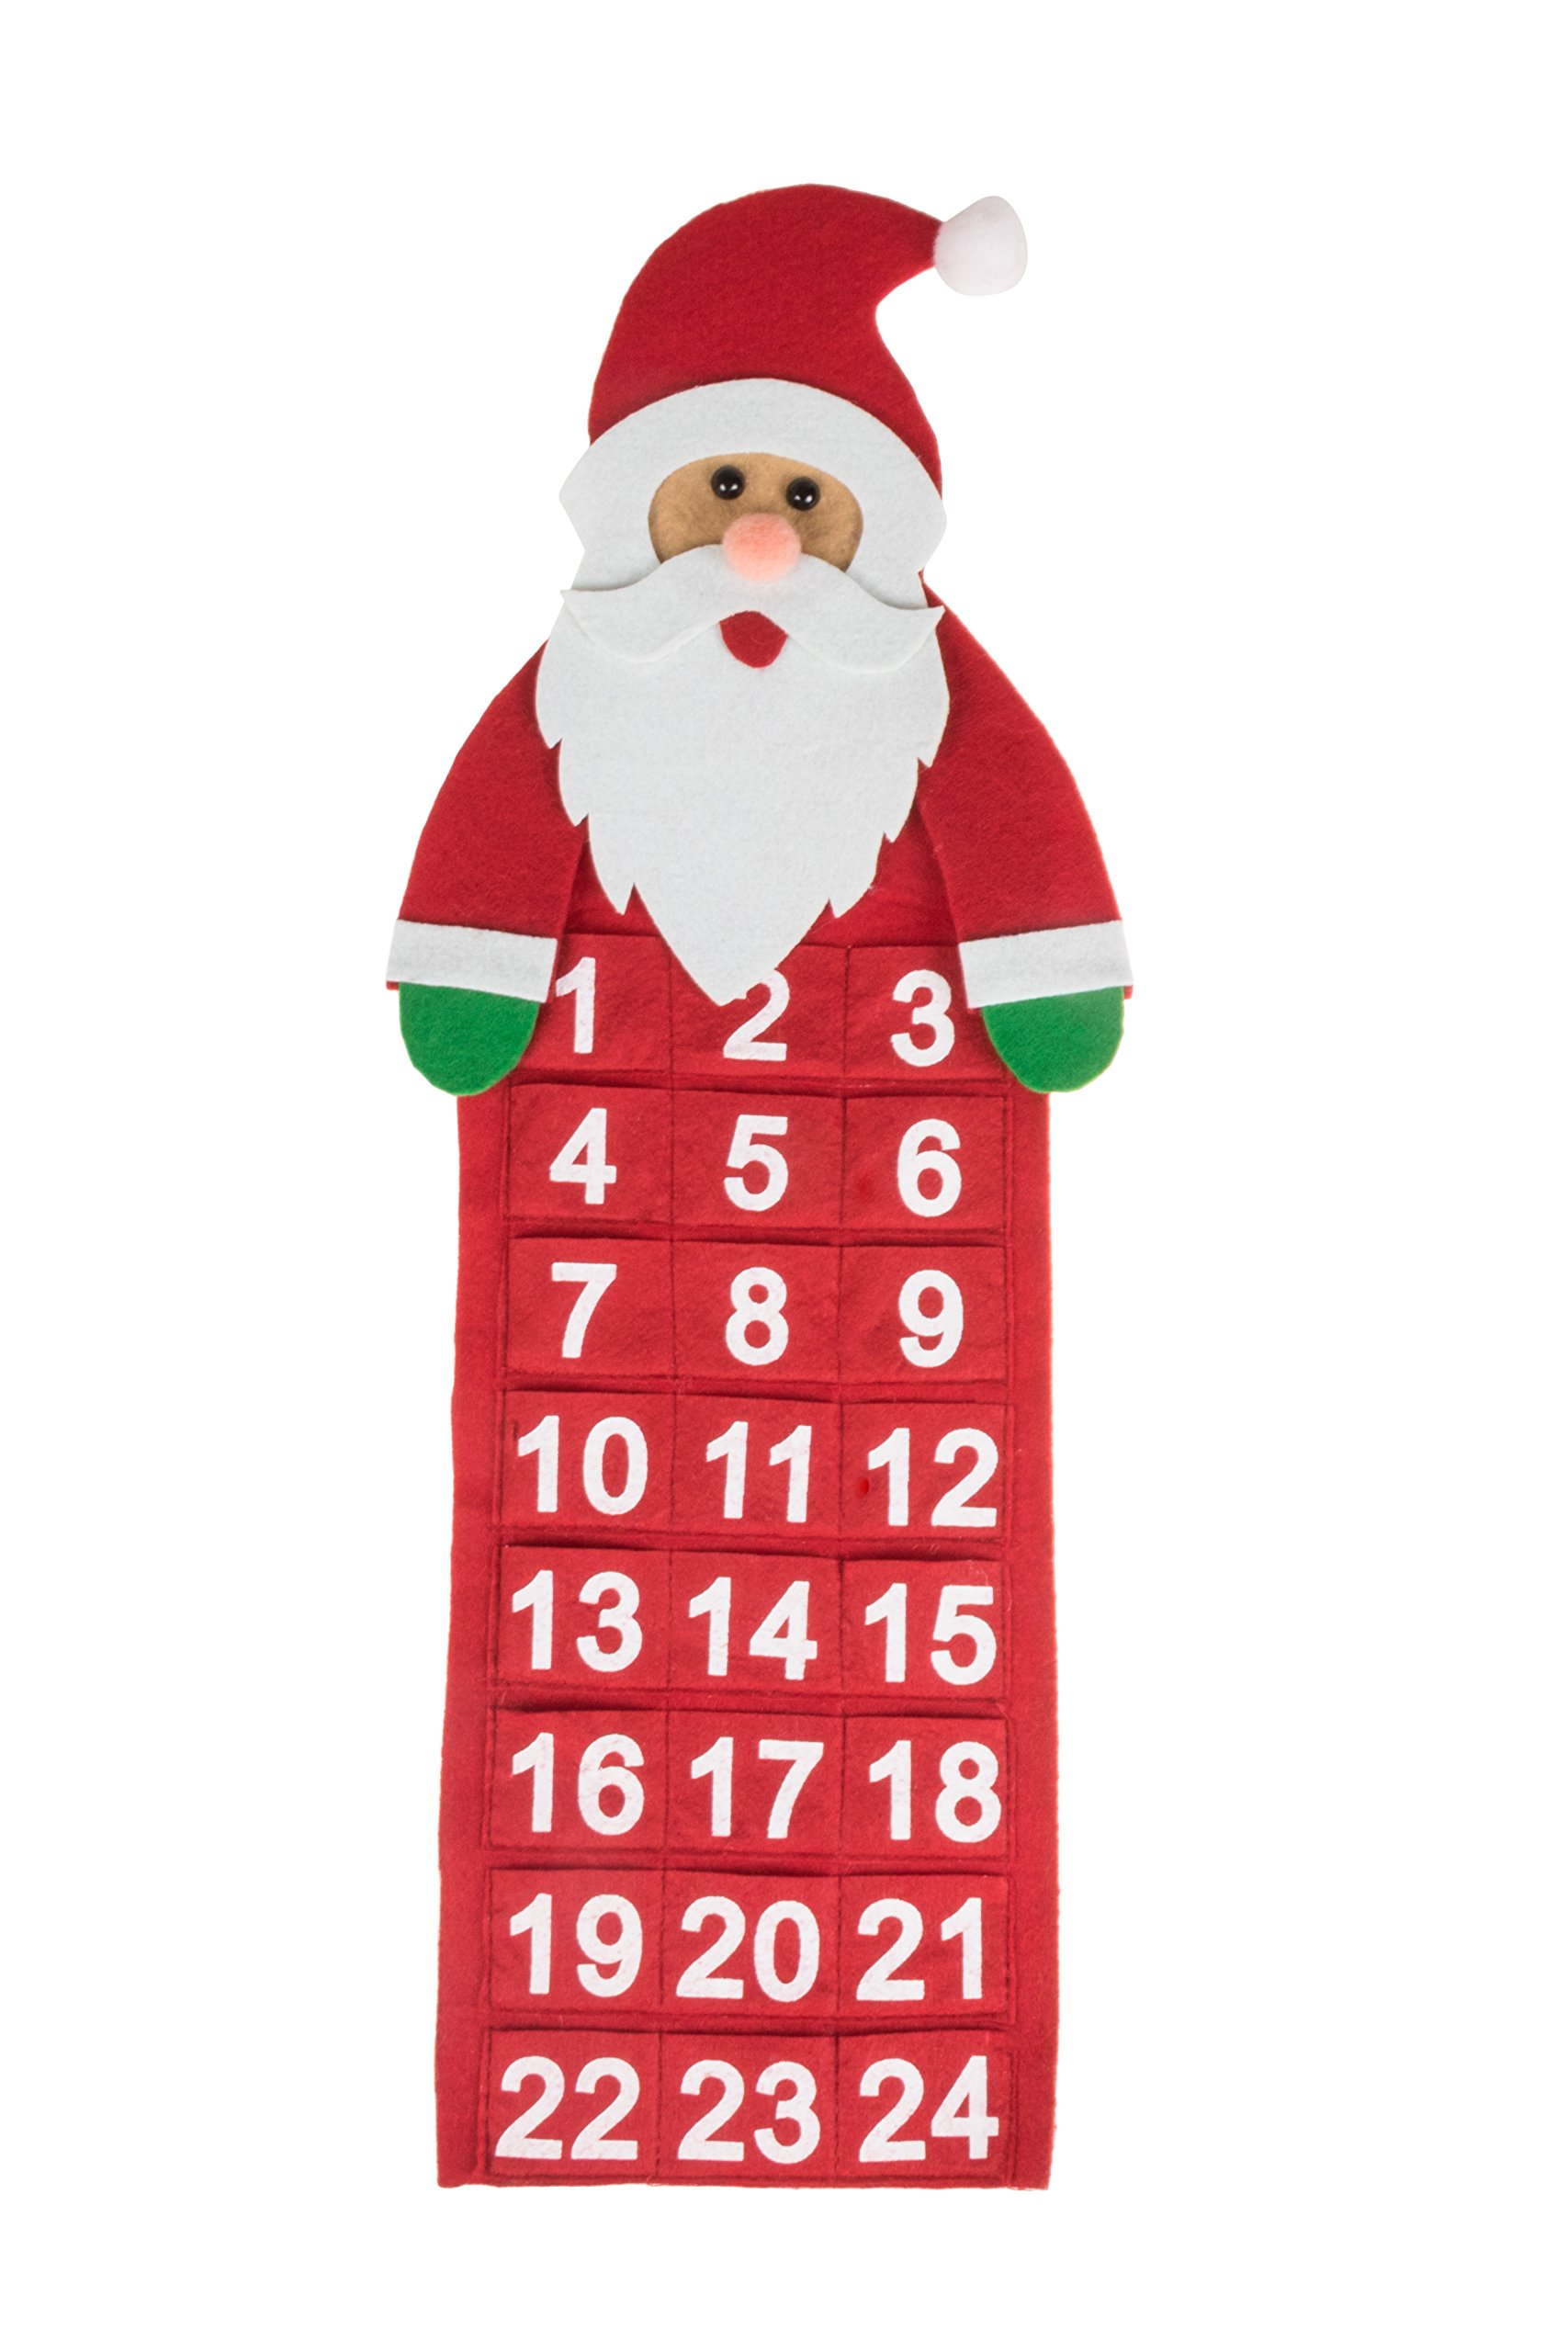 Clever Creations Christmas 24 Day Hanging Cloth Advent Calendar   Red Santa  Claus Christmas Design  